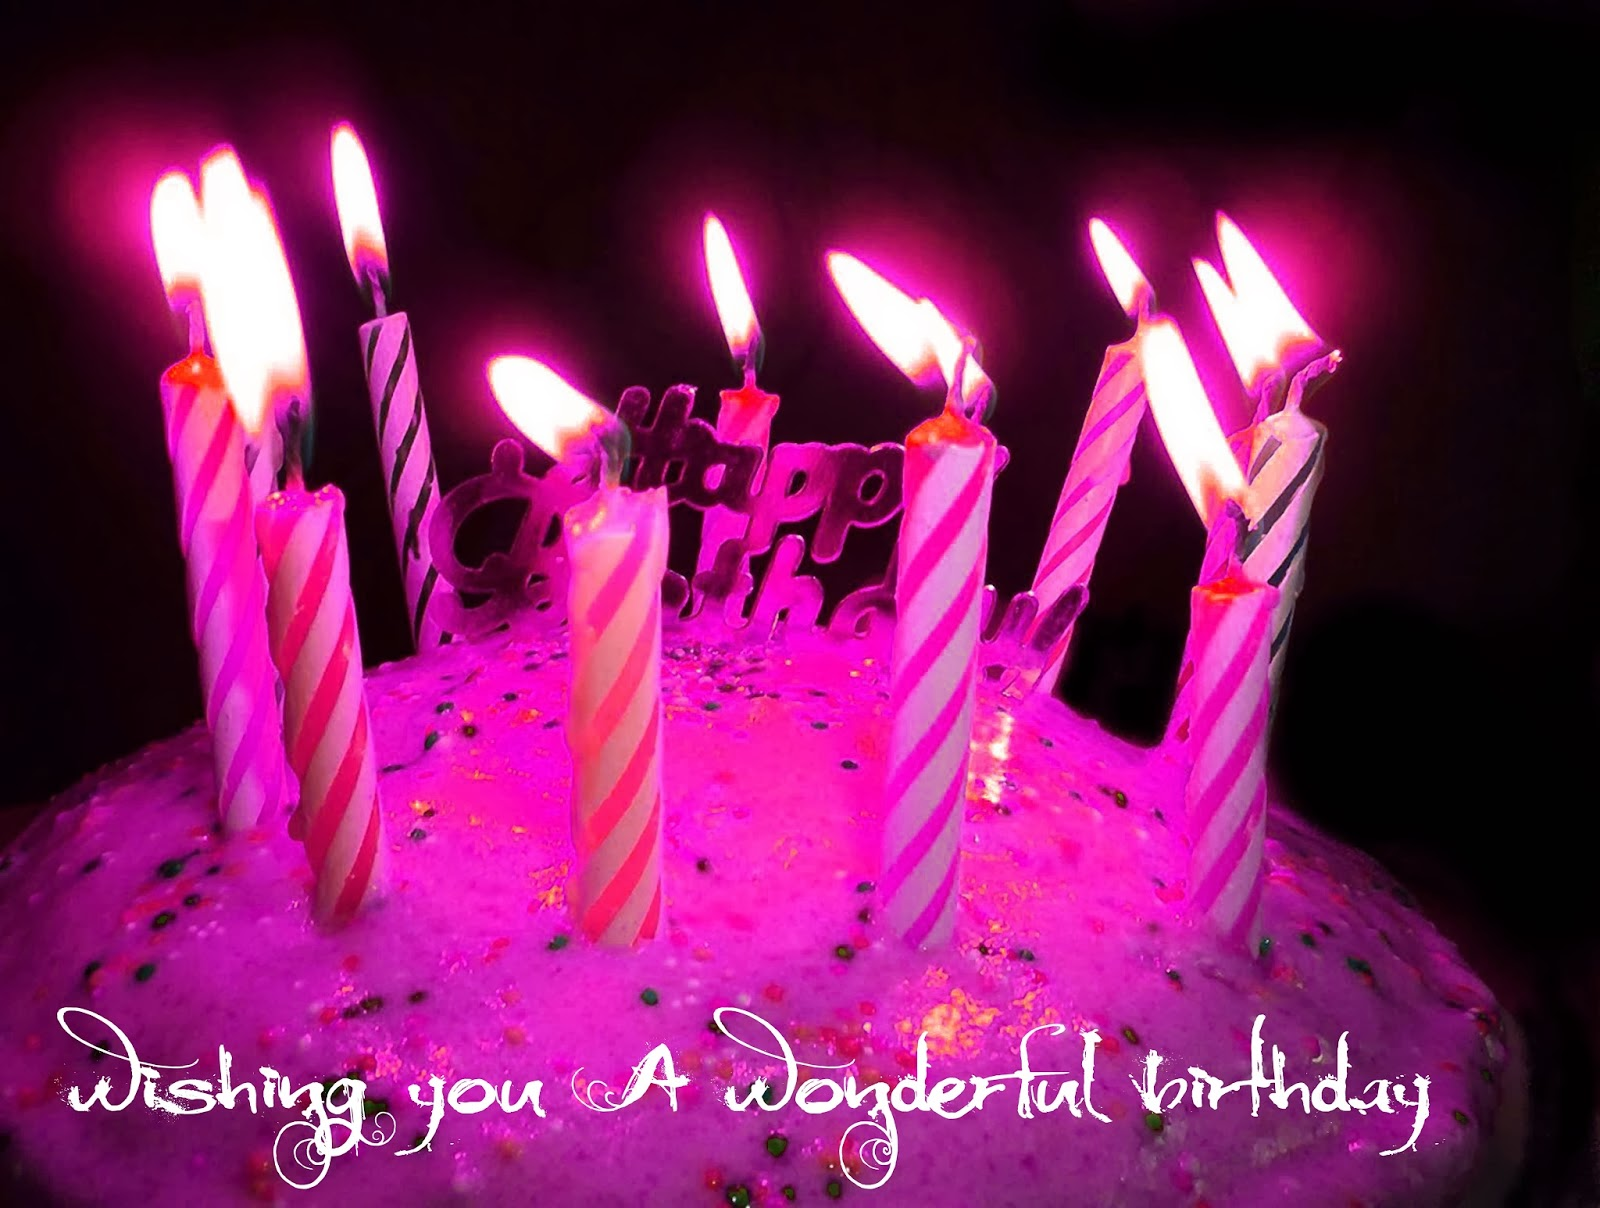 Happy-Birthday-Wishes-Walpaper-With-Candles-Image-Wide-HD